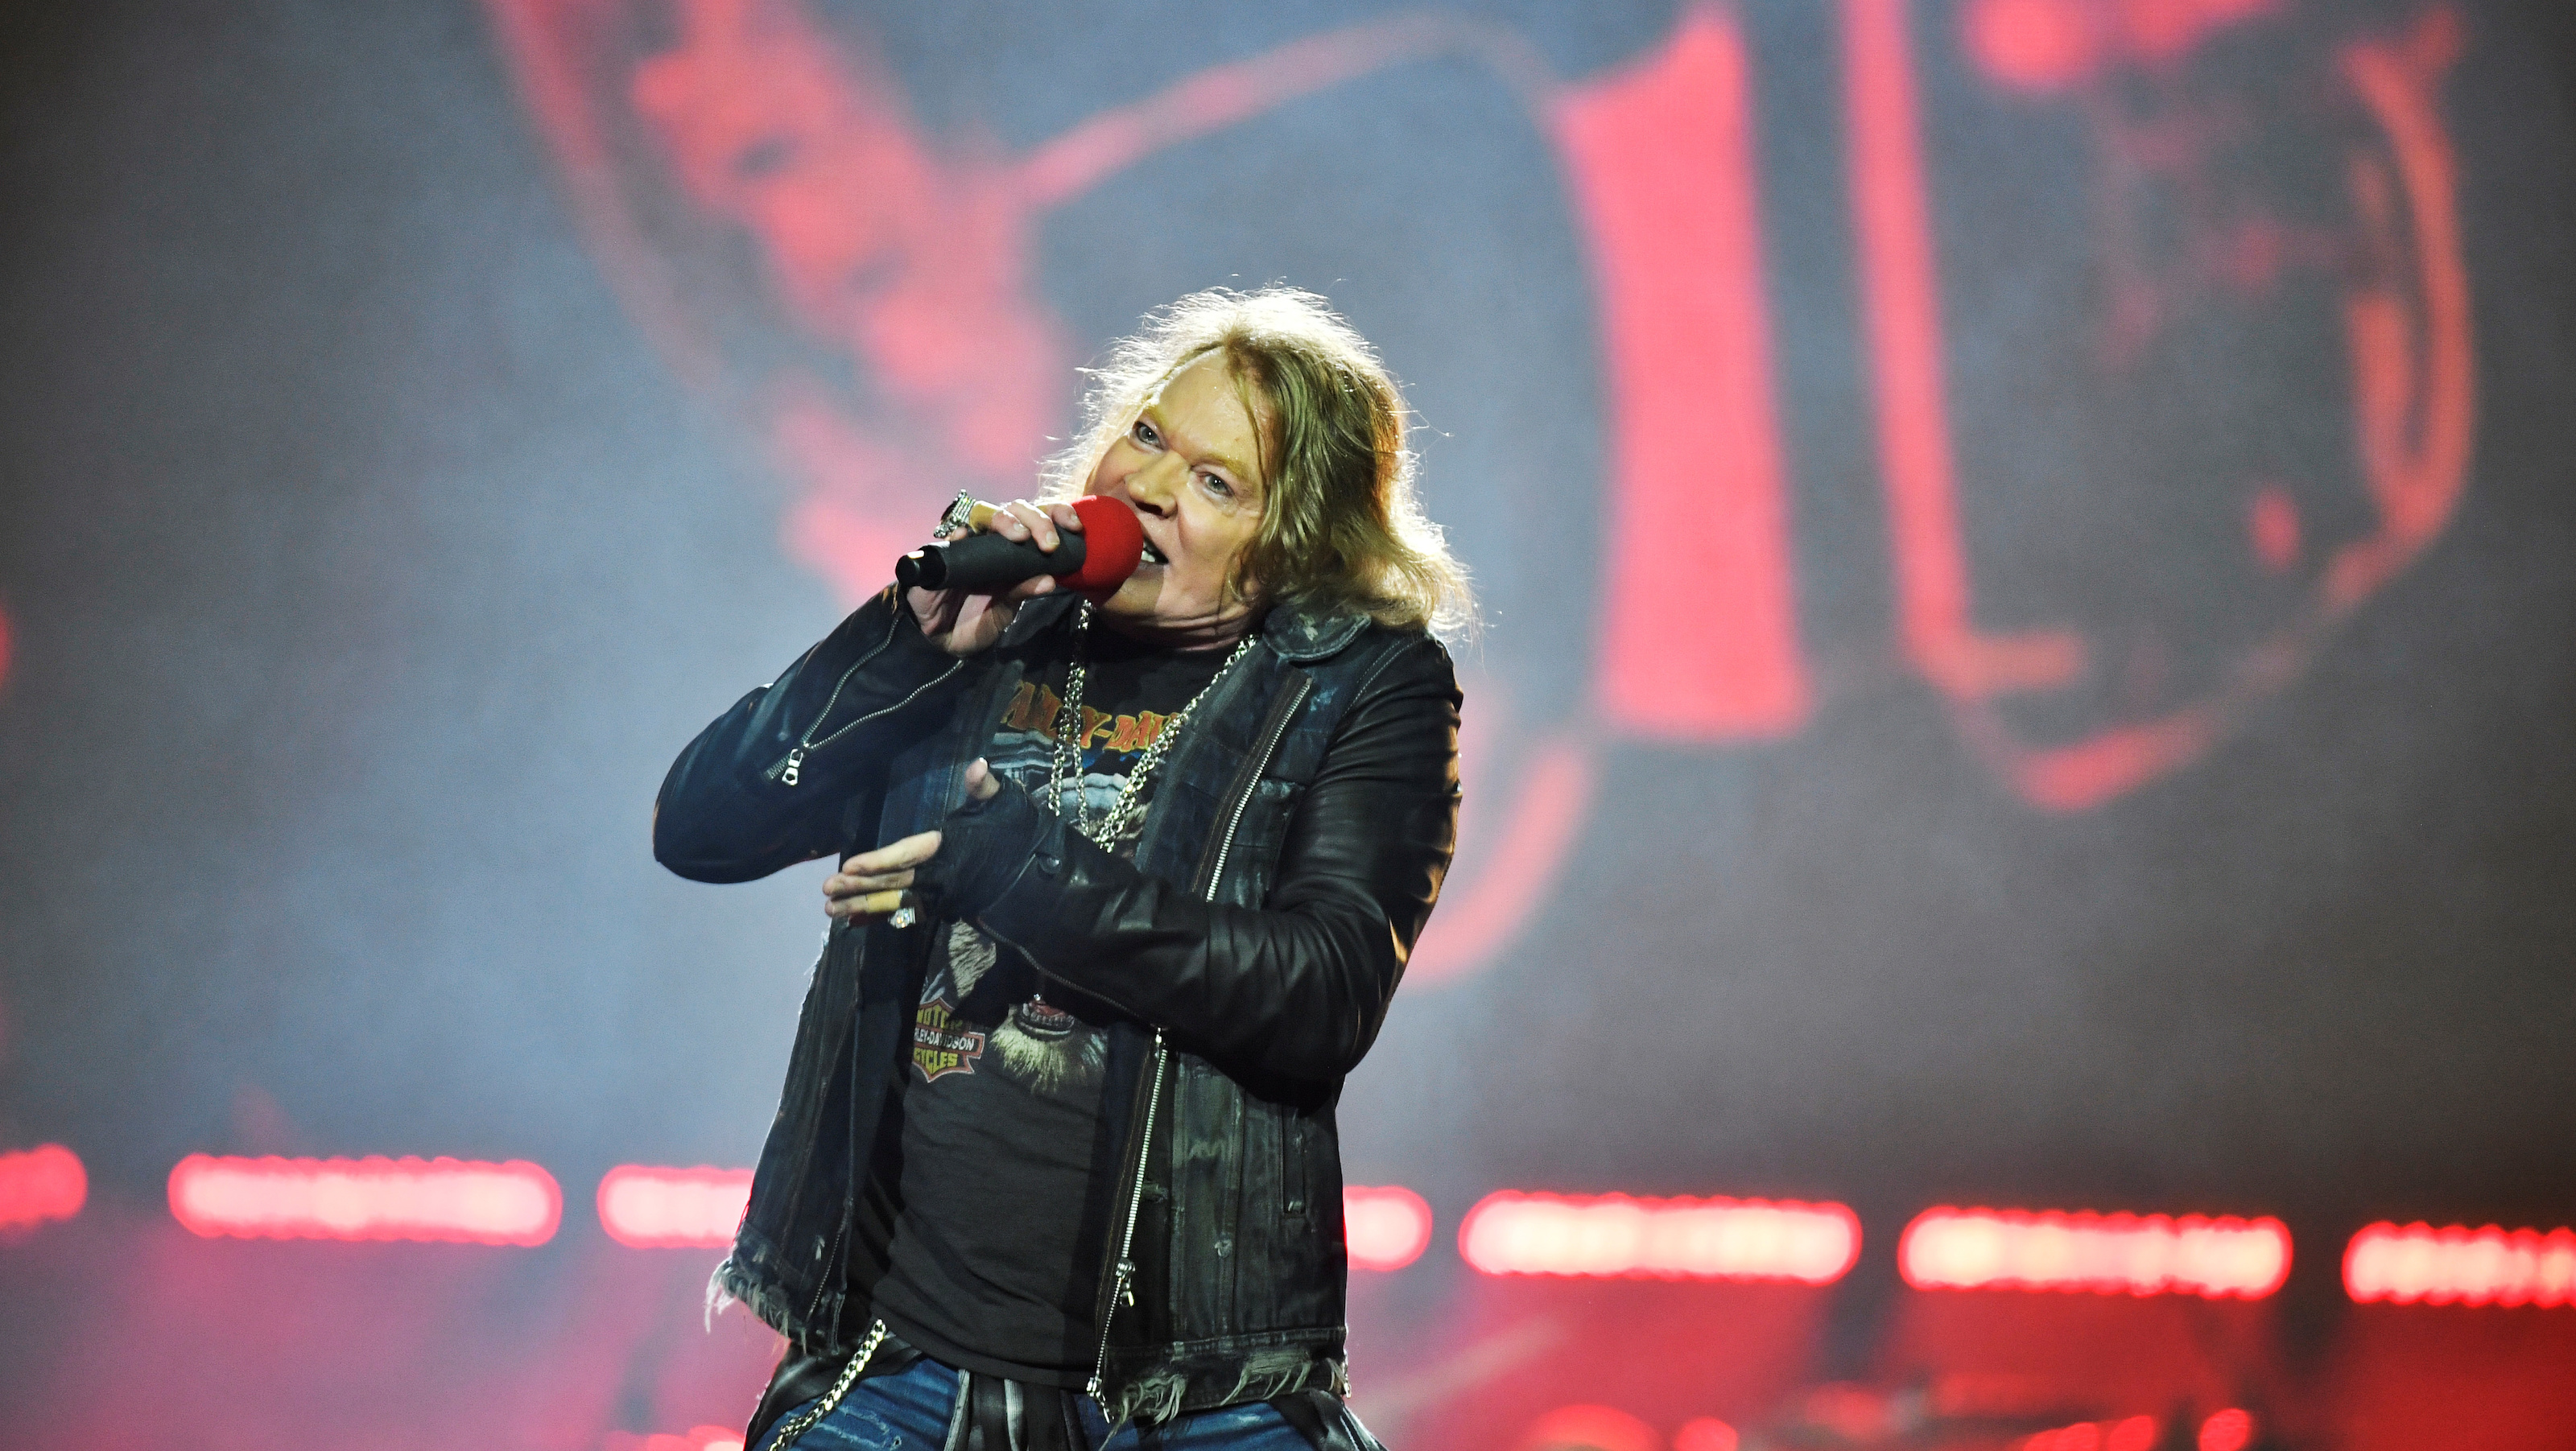 Axl Rose, lead singer of U.S. rock band Guns N' Roses, performs during a concert at Friends Arena in Stockholm, Sweden, June 29, 2017. TT News Agency/Vilhelm Stokstad via REUTERS    ATTENTION EDITORS - THIS IMAGE WAS PROVIDED BY A THIRD PARTY. SWEDEN OUT. - RTS196K4